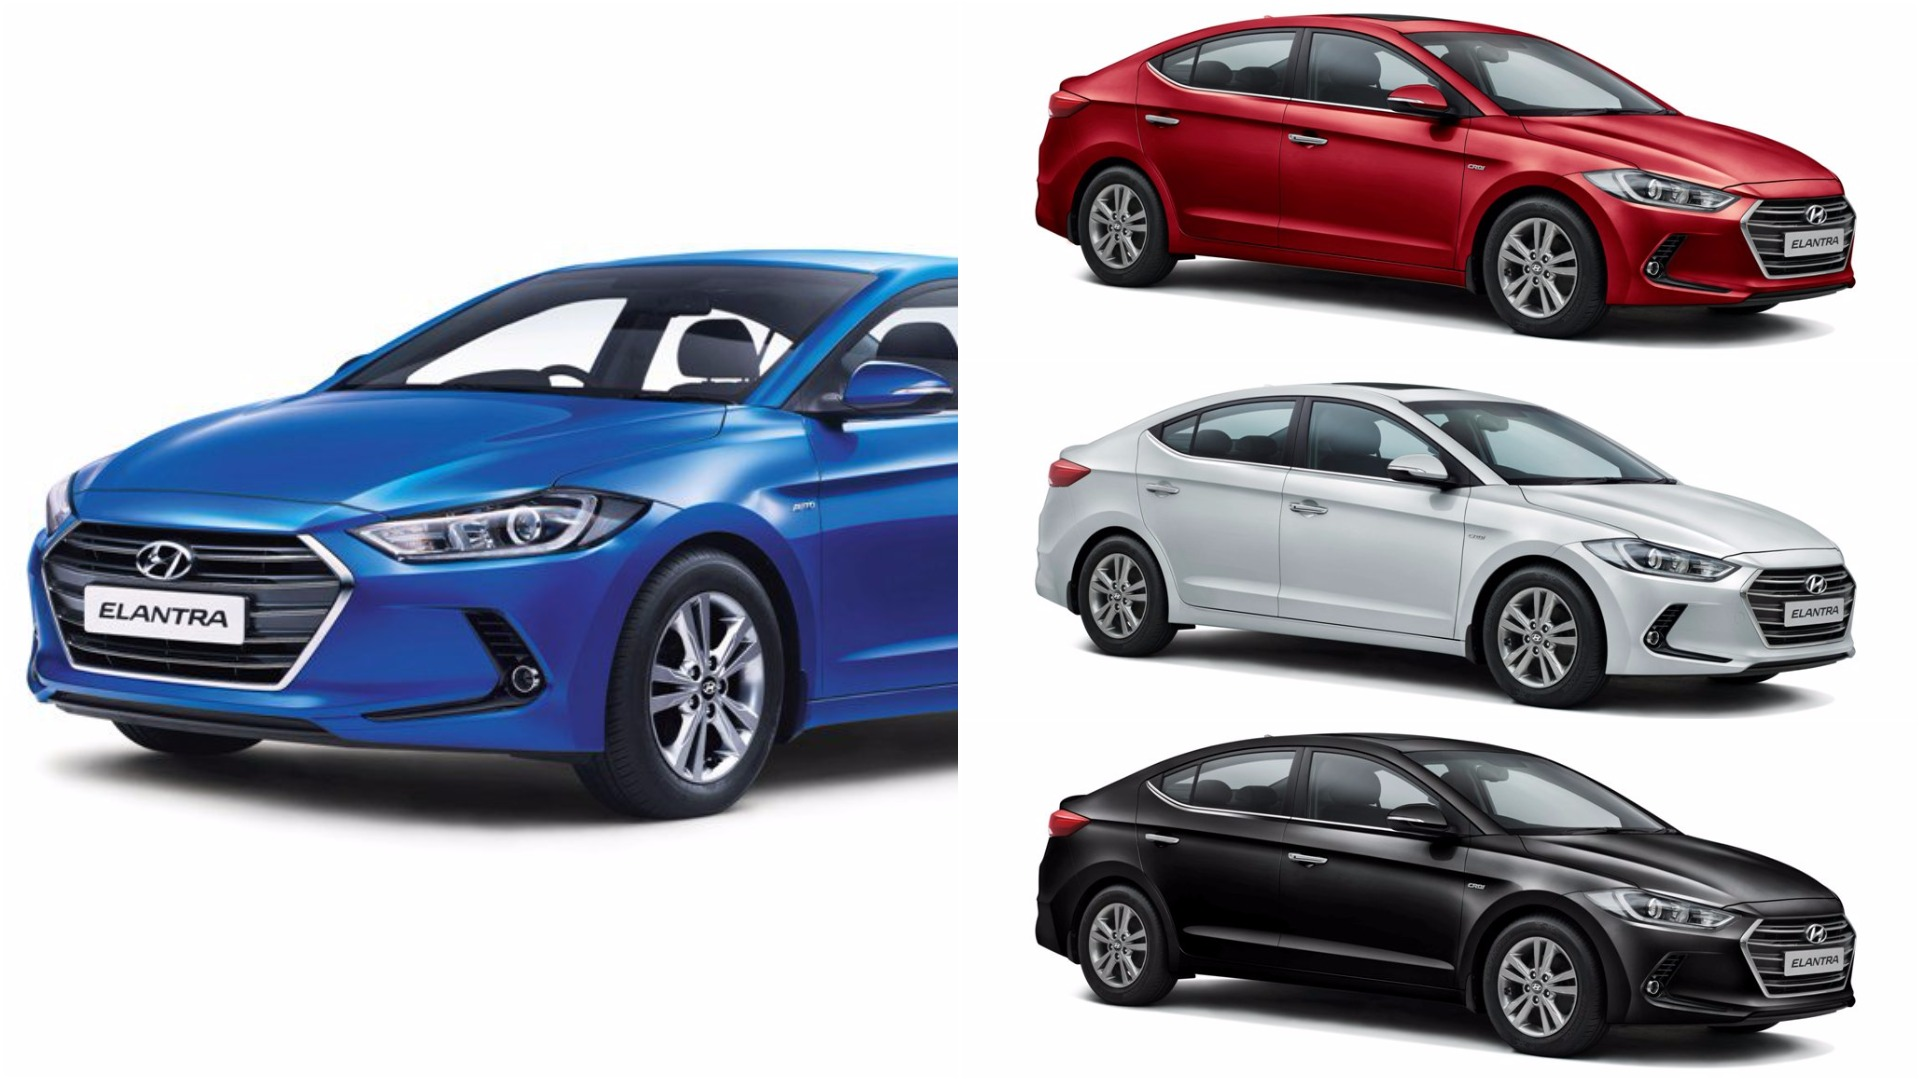 Hyundai Elantra 2016 Price Specification Mileage Variants News